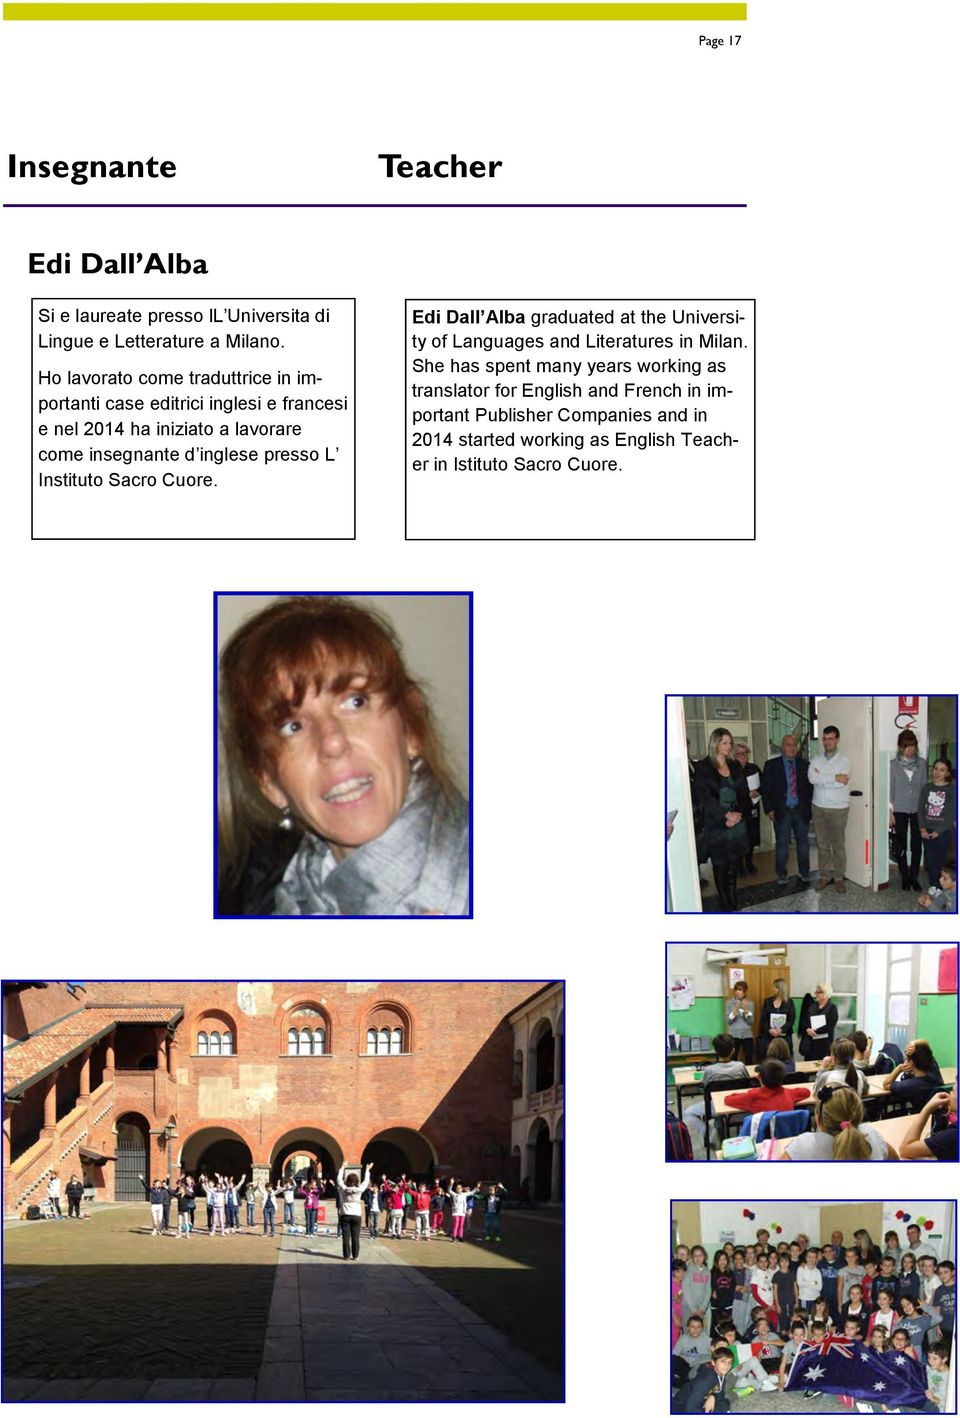 inglese presso L Instituto Sacro Cuore. Edi Dall Alba graduated at the University of Languages and Literatures in Milan.